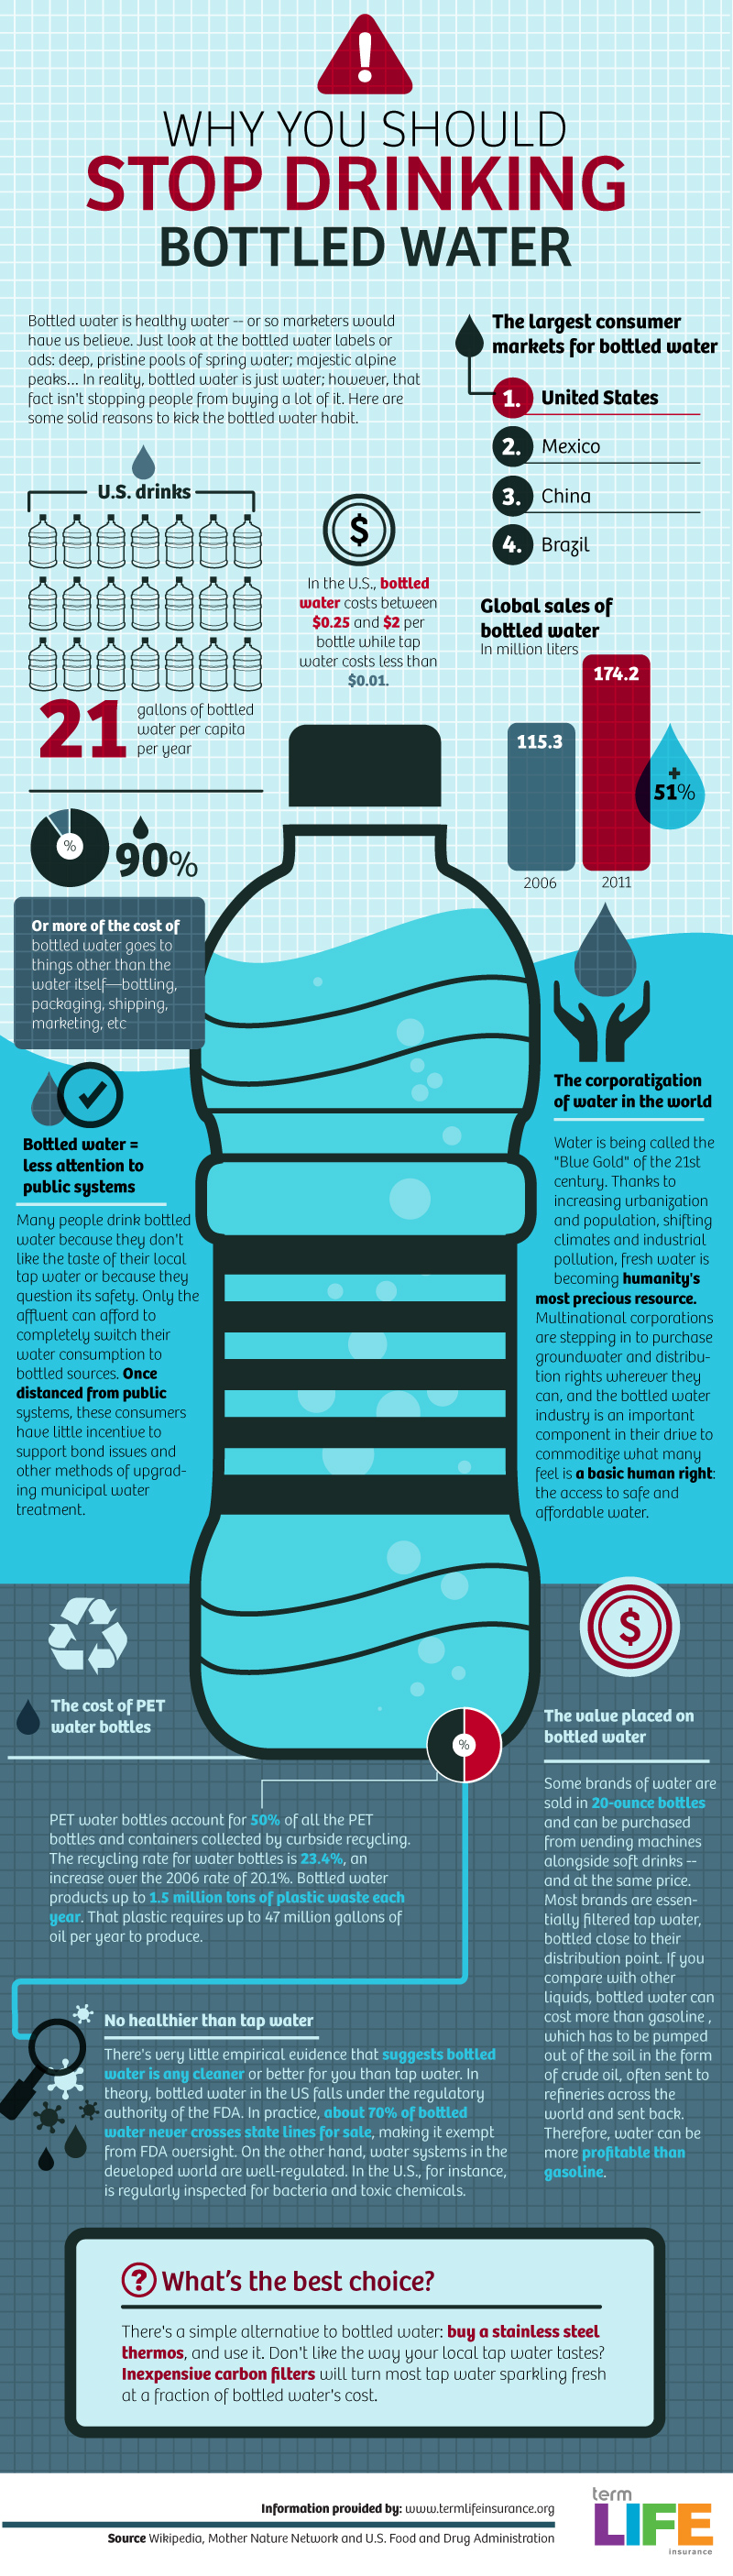 infographic about bottled water and why we should not drink it.